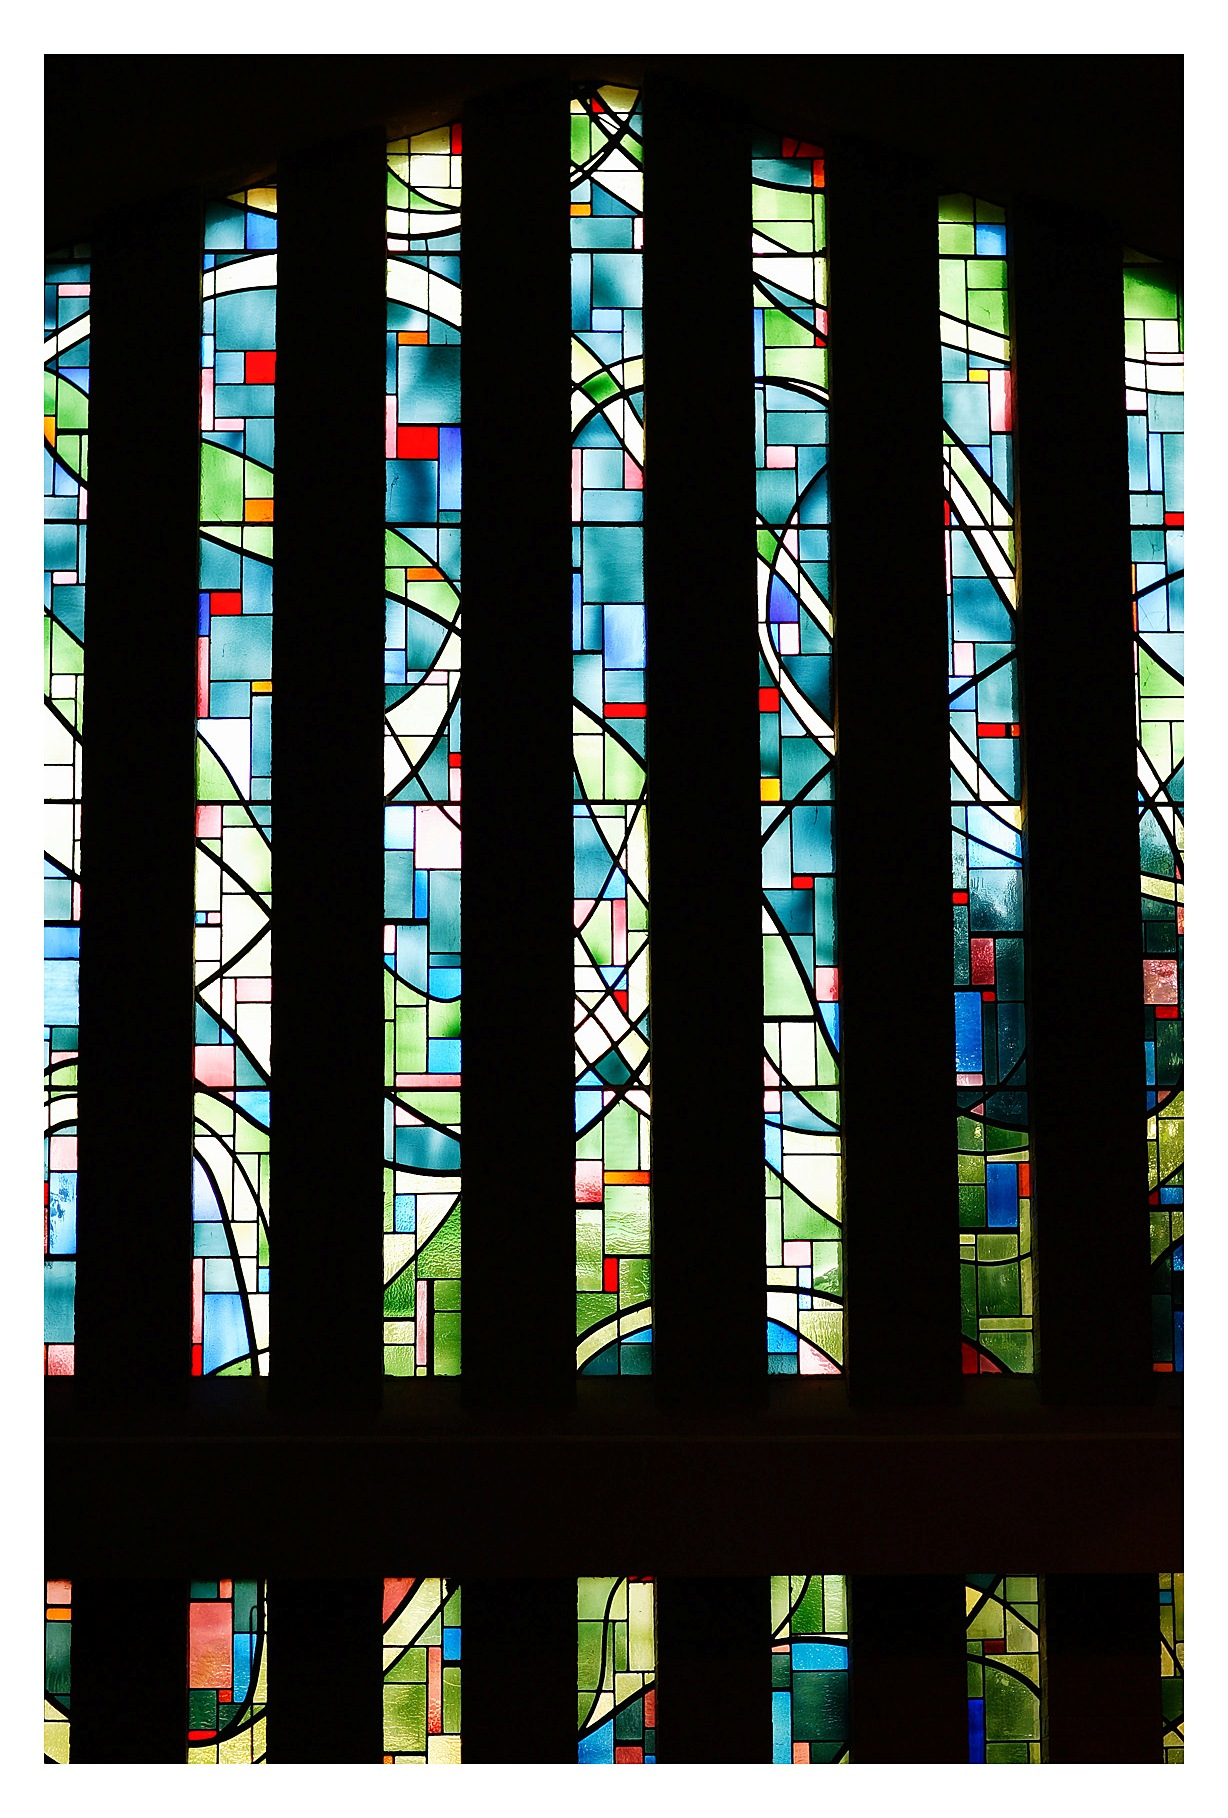 stain glass window_3